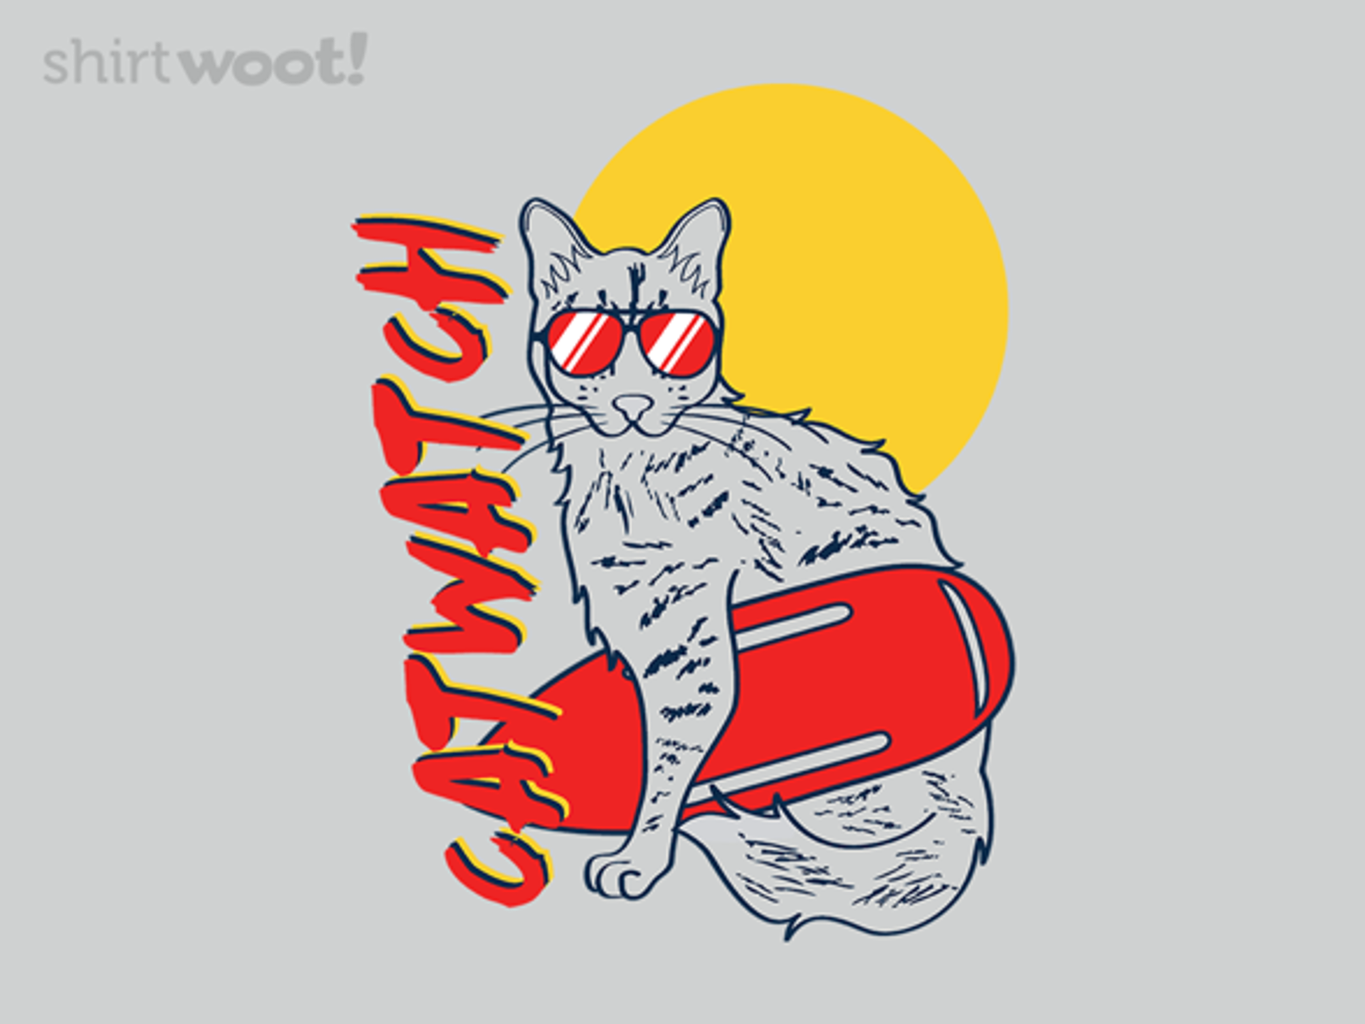 Woot!: Catwatch - $15.00 + Free shipping